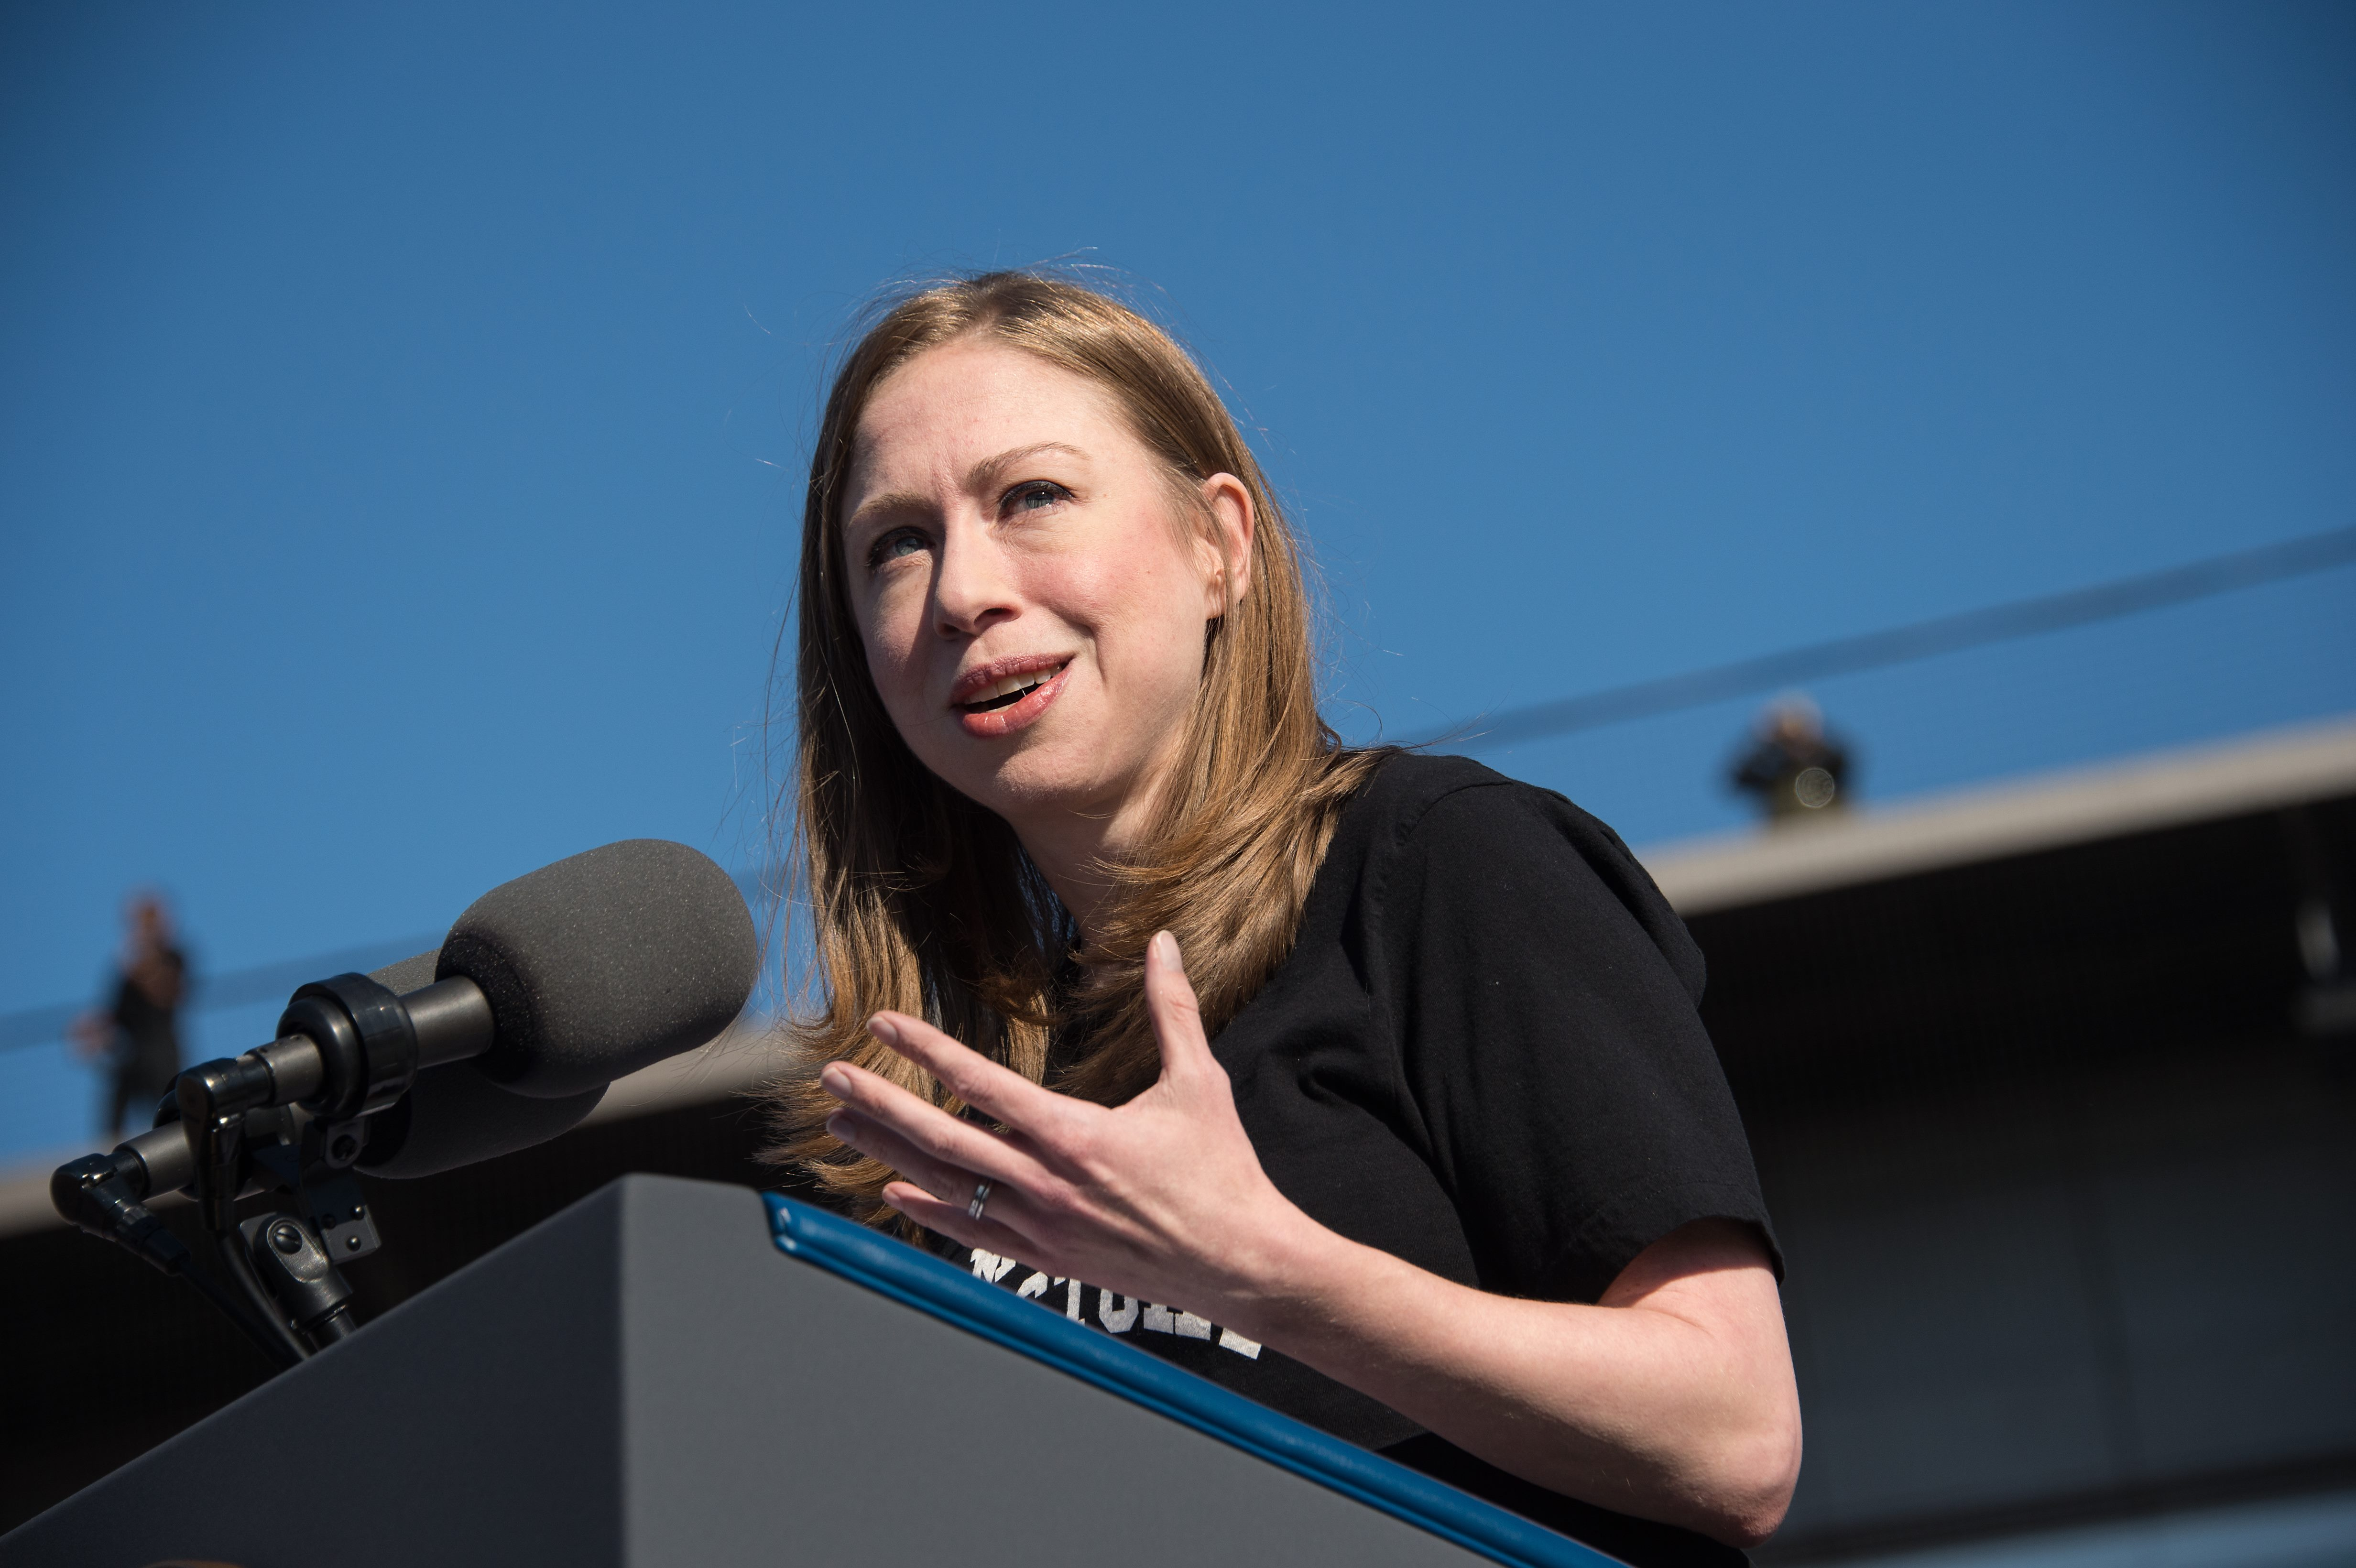 Chelsea Clinton introduces US President Barack Obama at a rally for Democratic presidential nominee Hillary Clinton in Ann Arbor, Michigan, on November 7, 2016.(NICHOLAS KAMM/AFP/Getty Images)